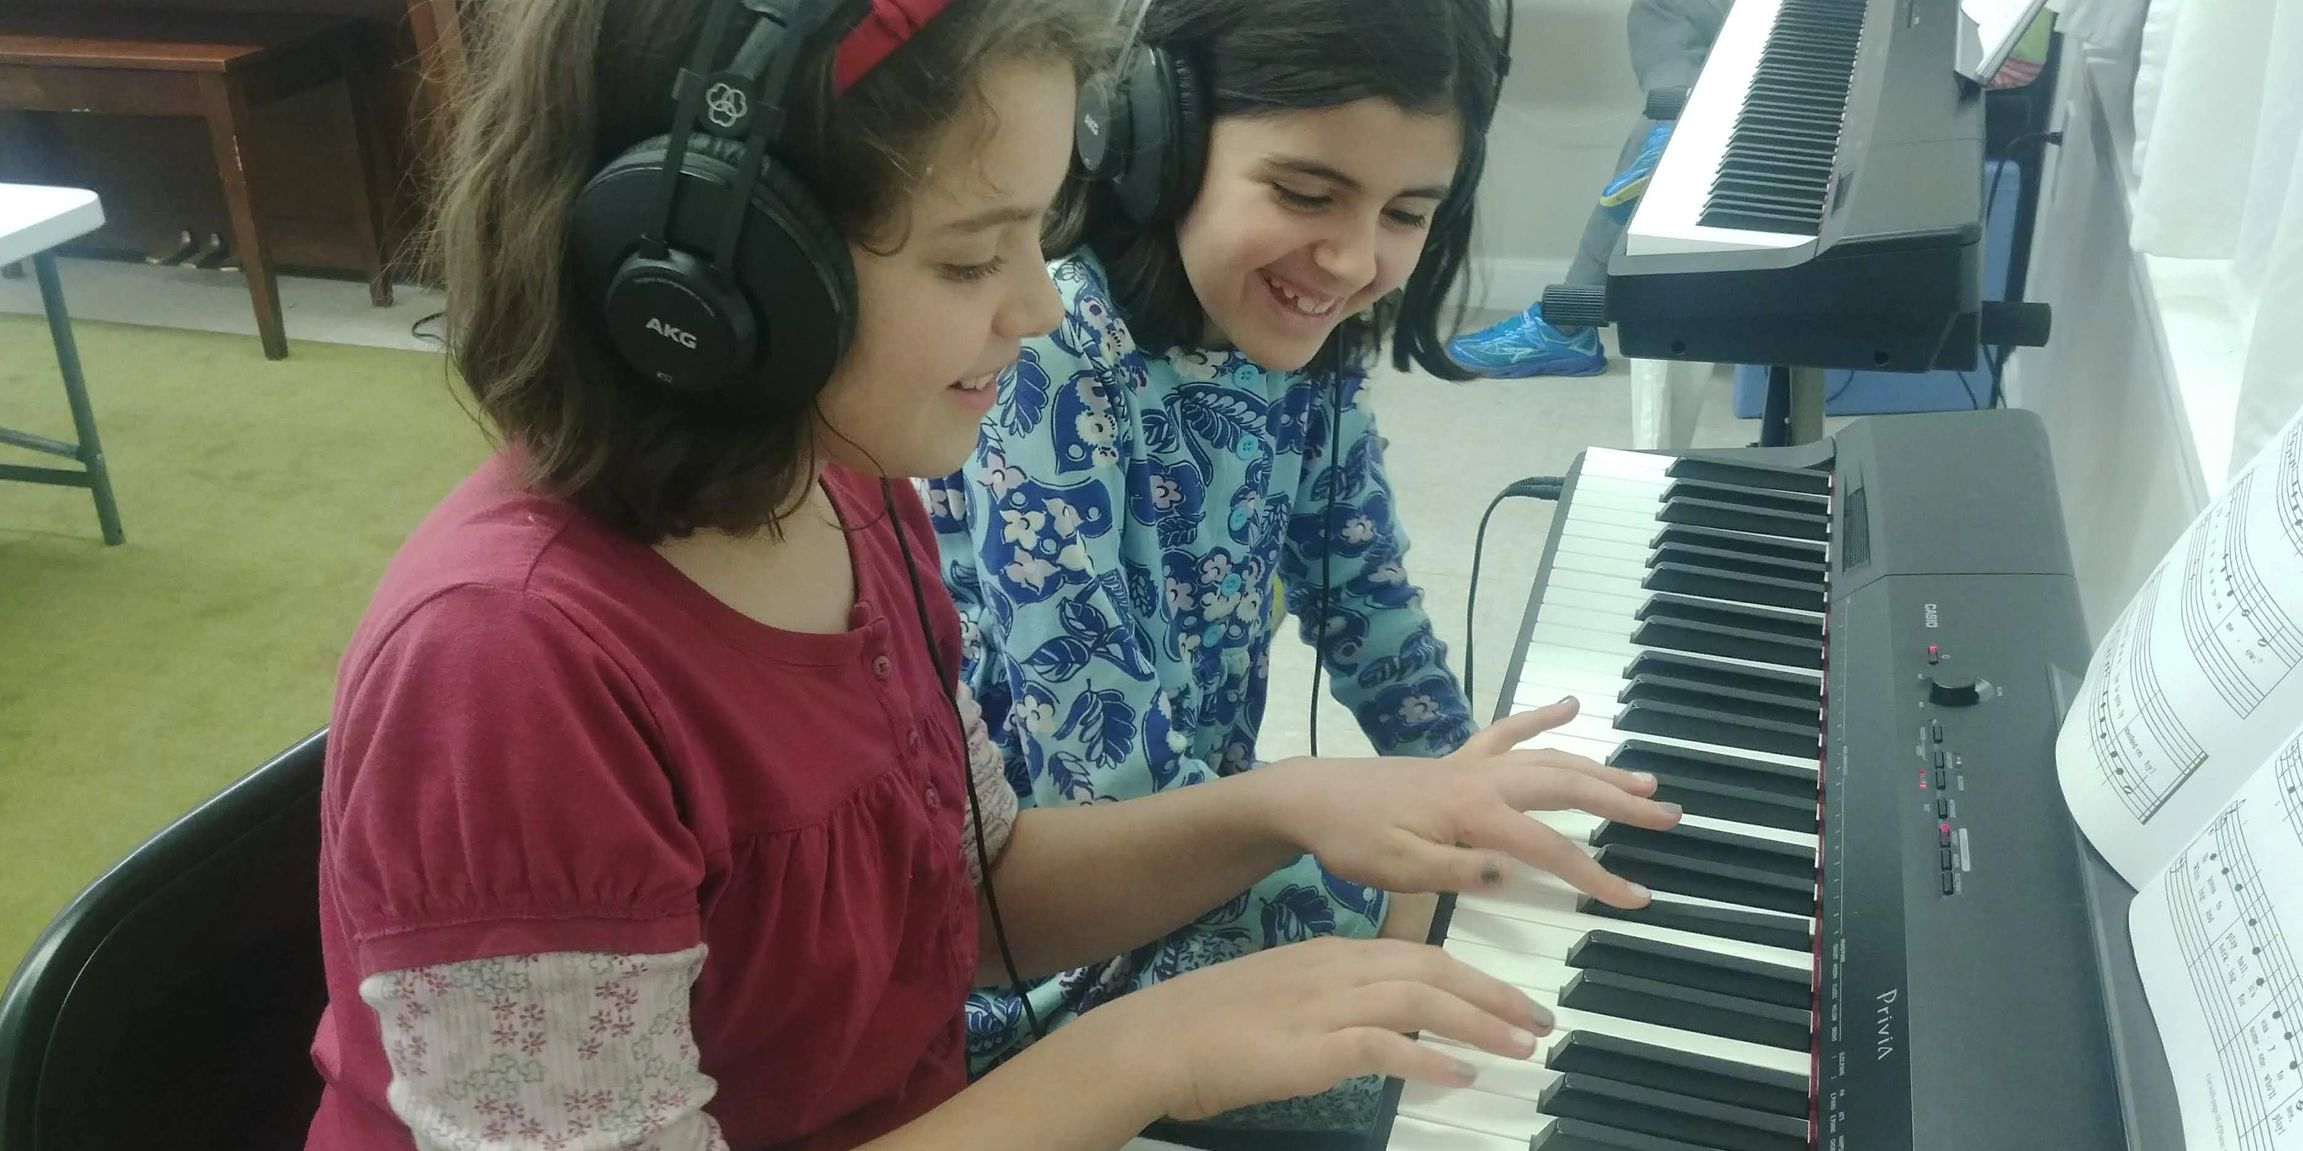 Two smiling girls playing piano together on headphones